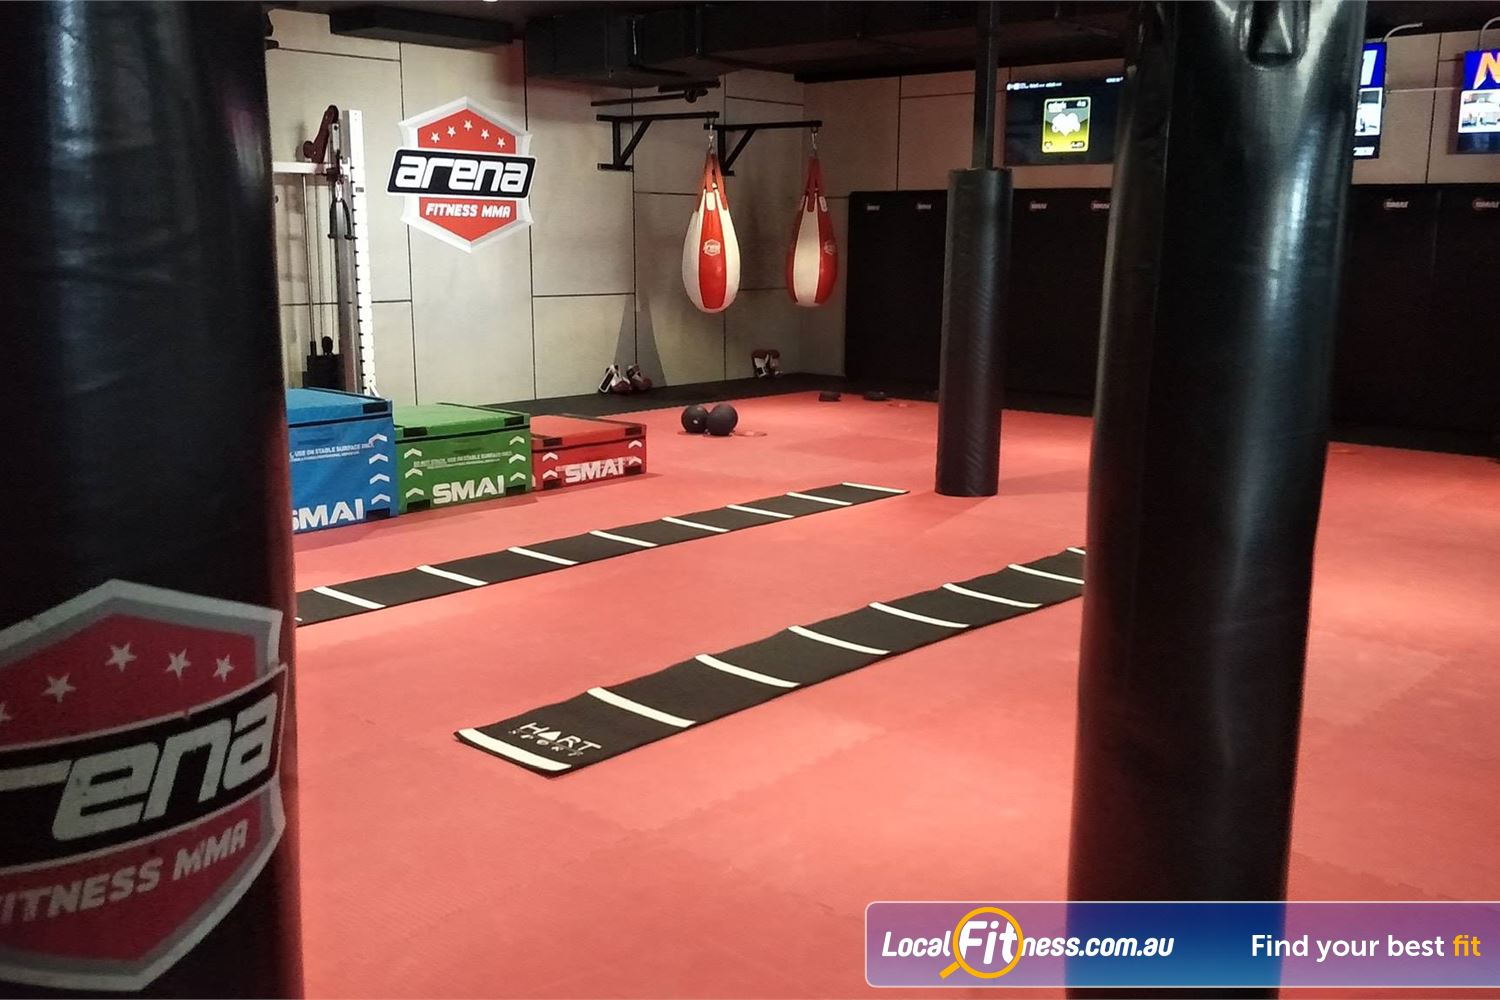 Goodlife Health Clubs Beenleigh Our Dedicated Arena Fitness MMA gym space.